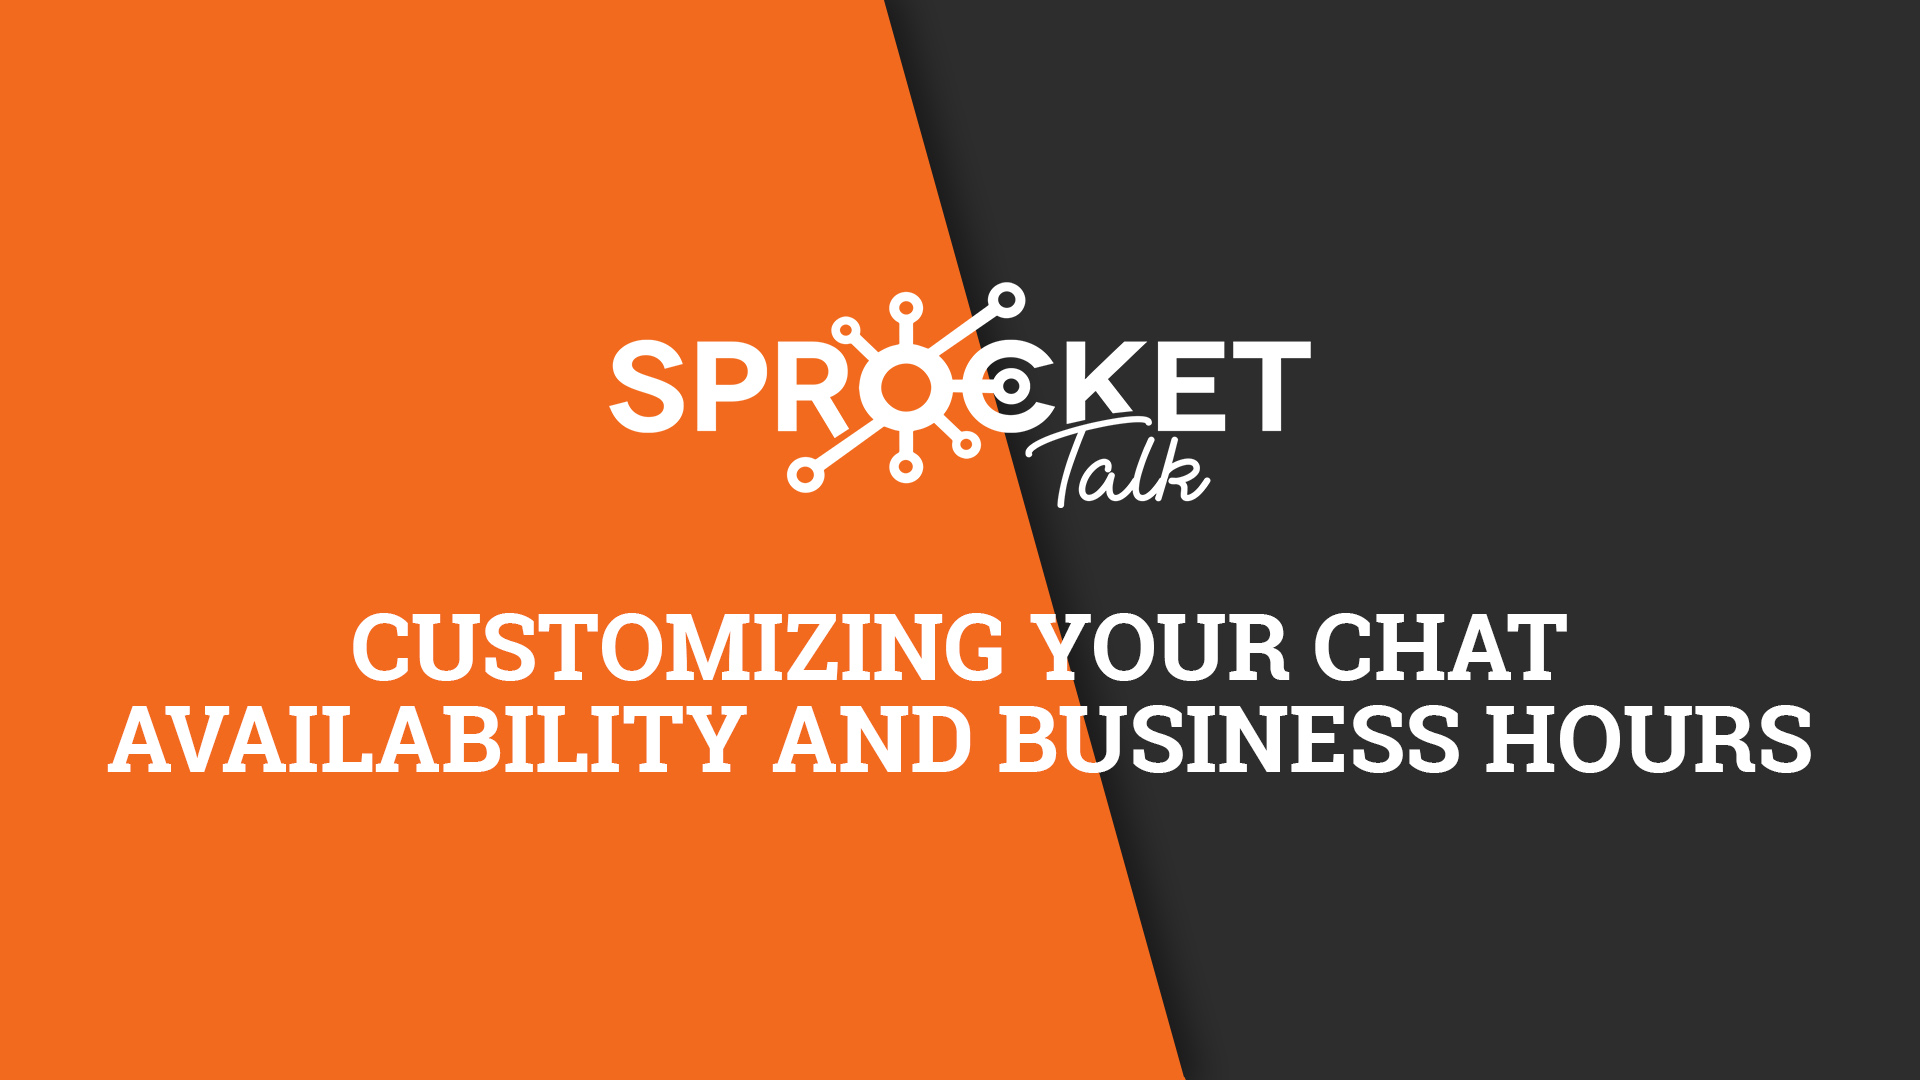 Customizing your Chat Availability and Business Hours